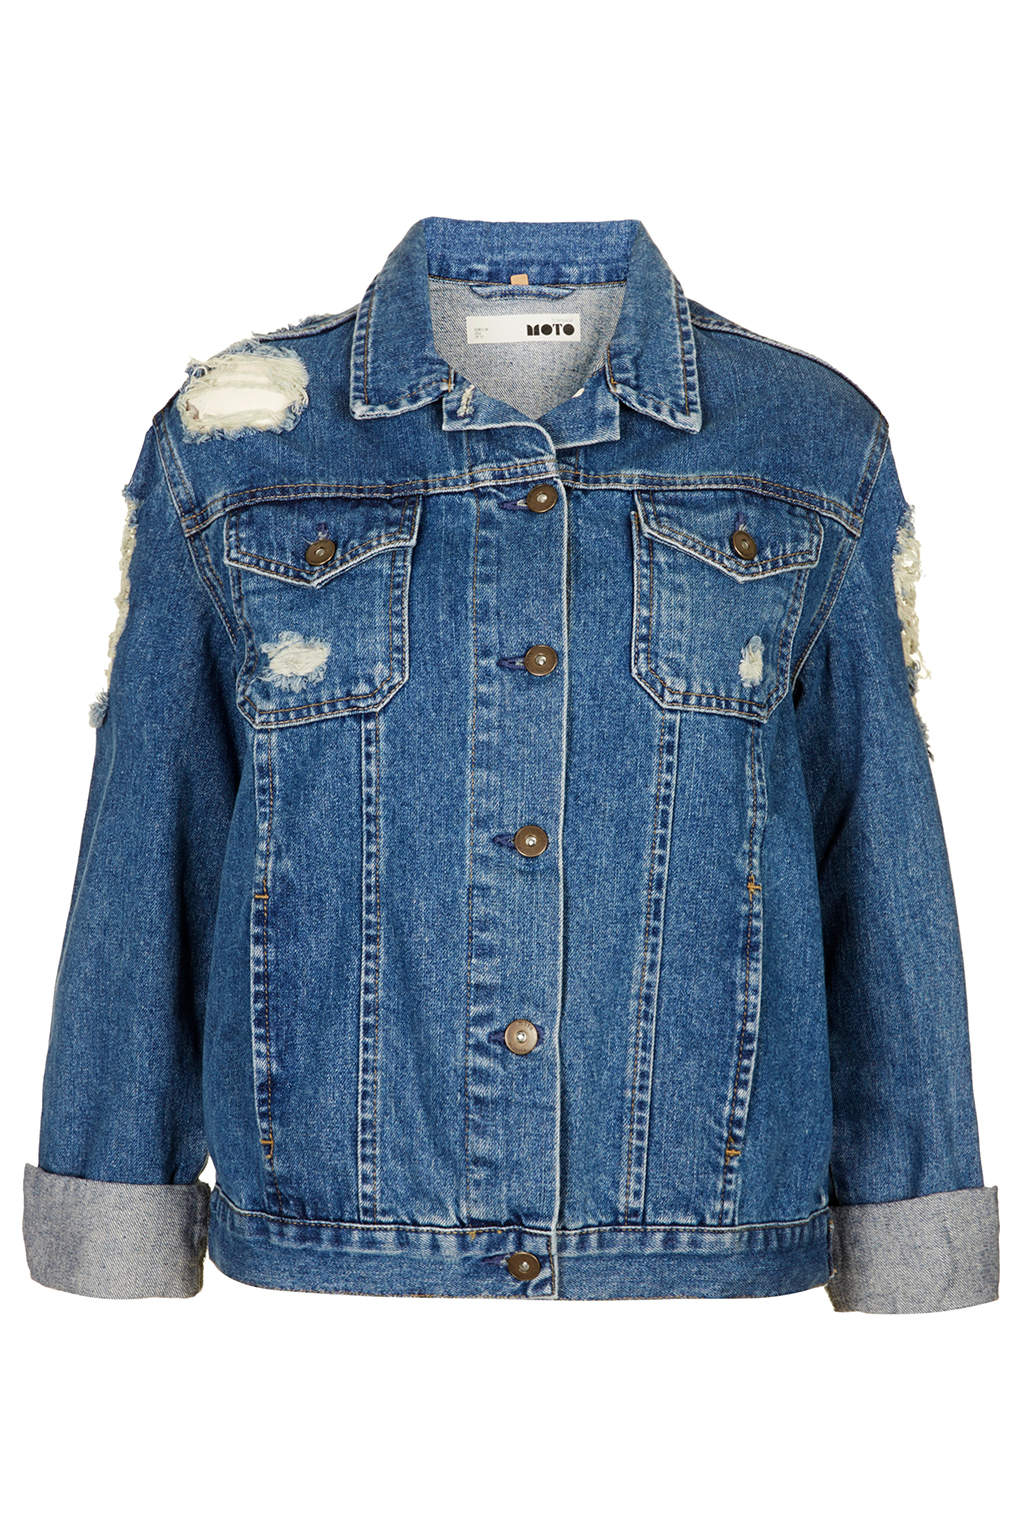 Find denim moto jacket at ShopStyle. Shop the latest collection of denim moto jacket from the most popular stores - all in one place.